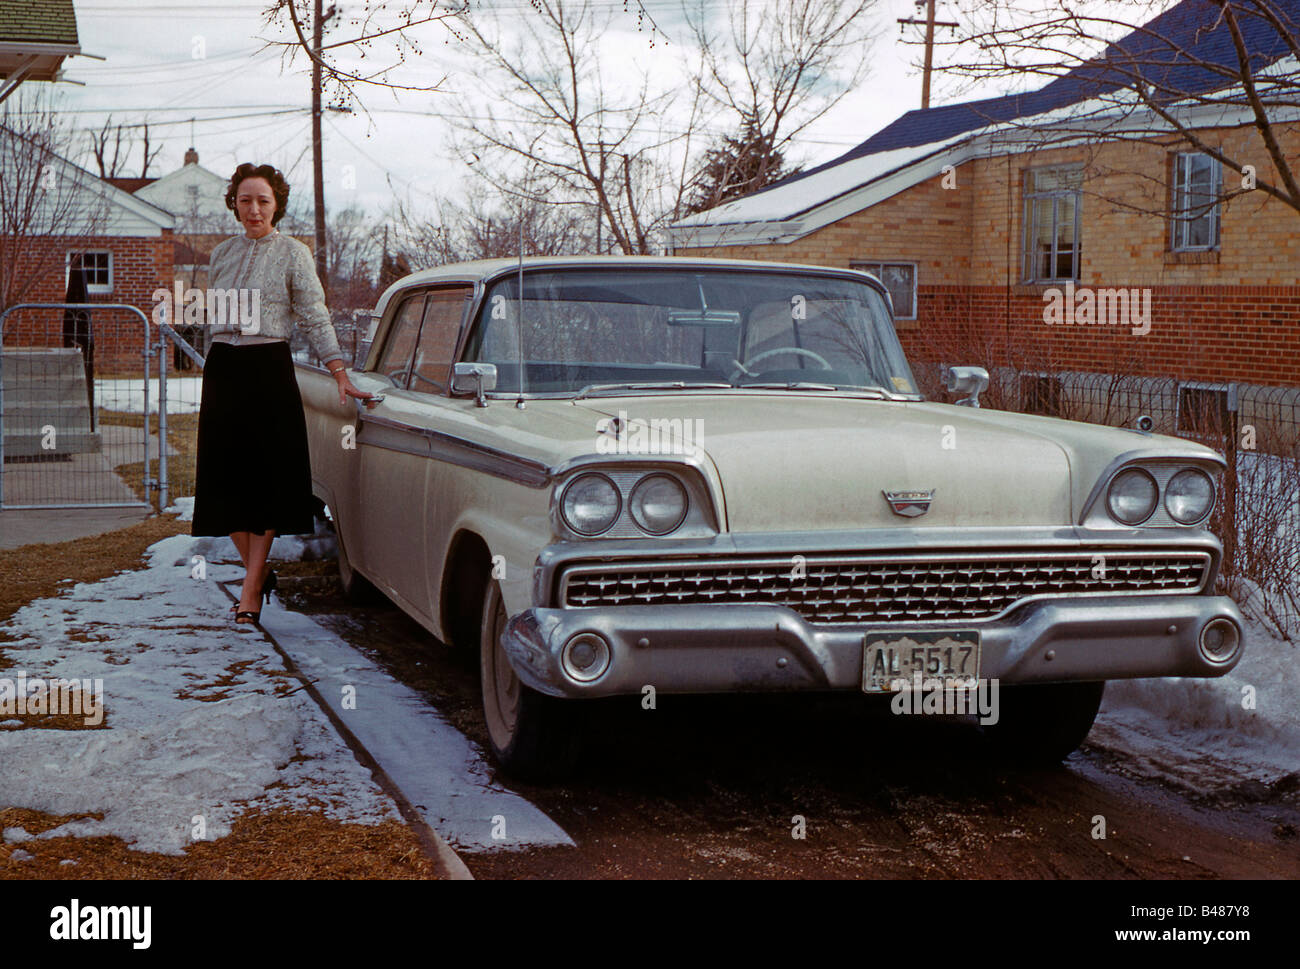 Ford Galaxie 2 door sedan with woman owner, Colorado, USA, 1960 - Stock Image